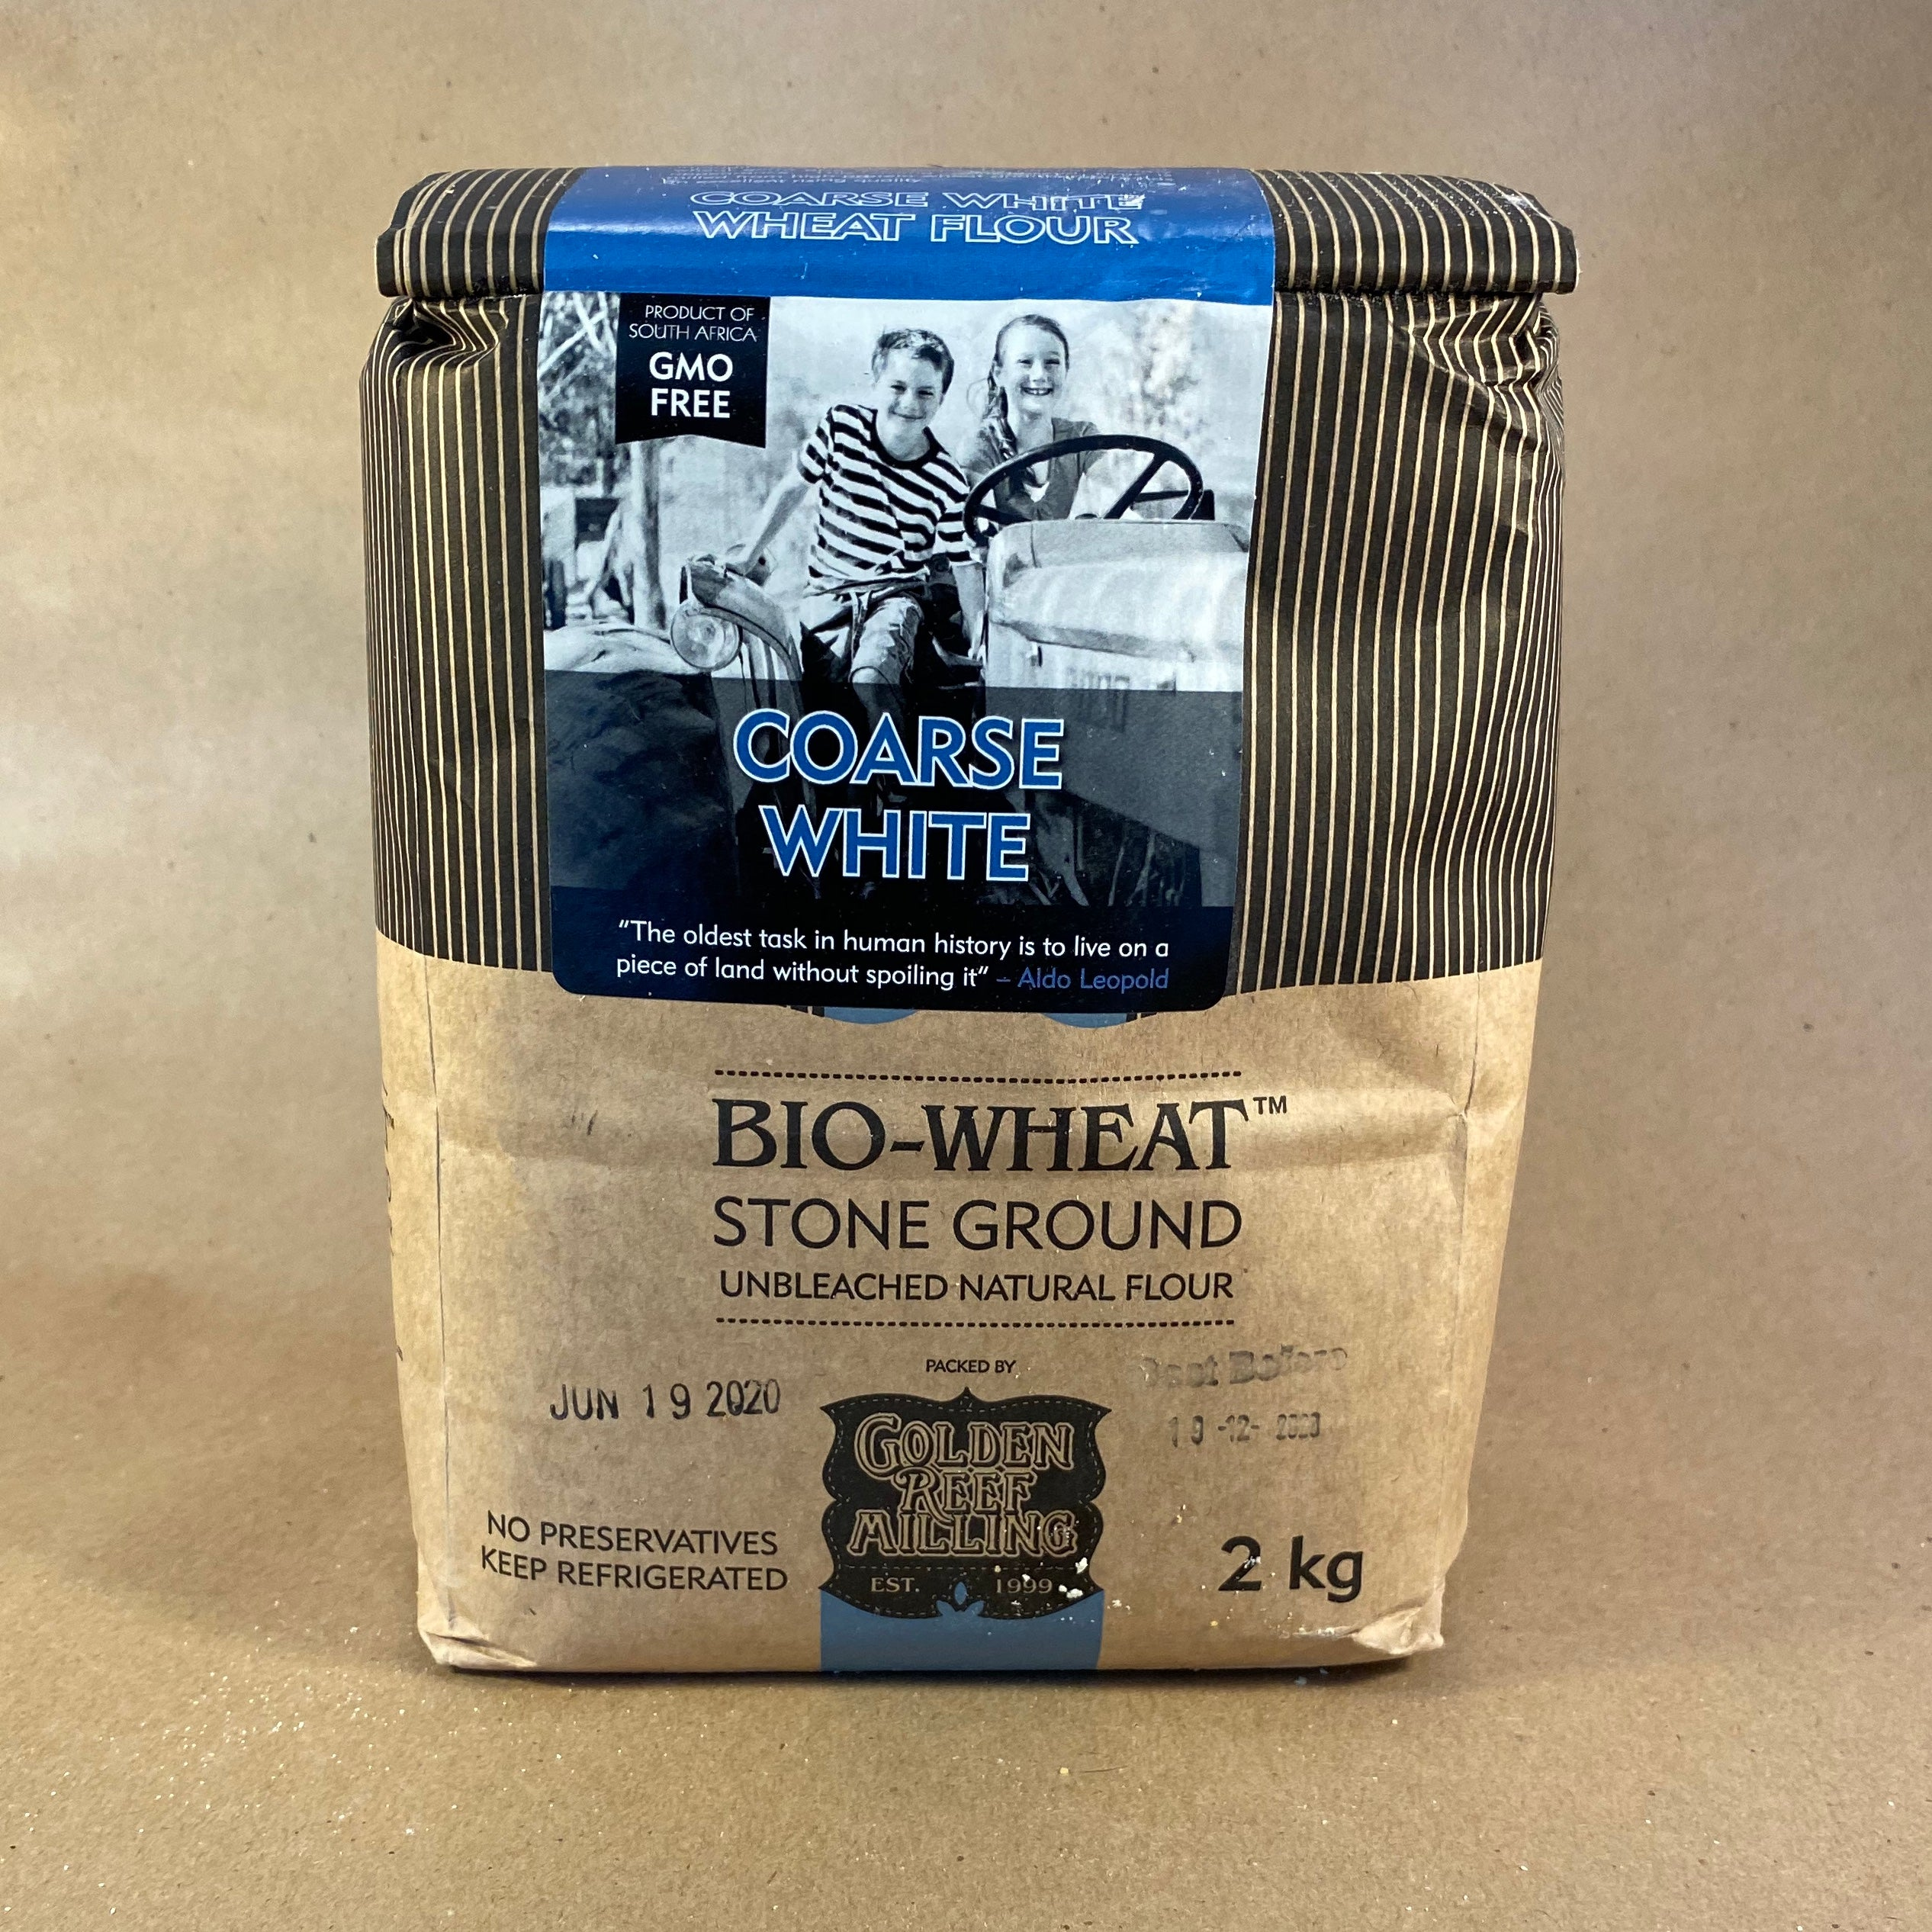 Course White Flour - Bio-Wheat